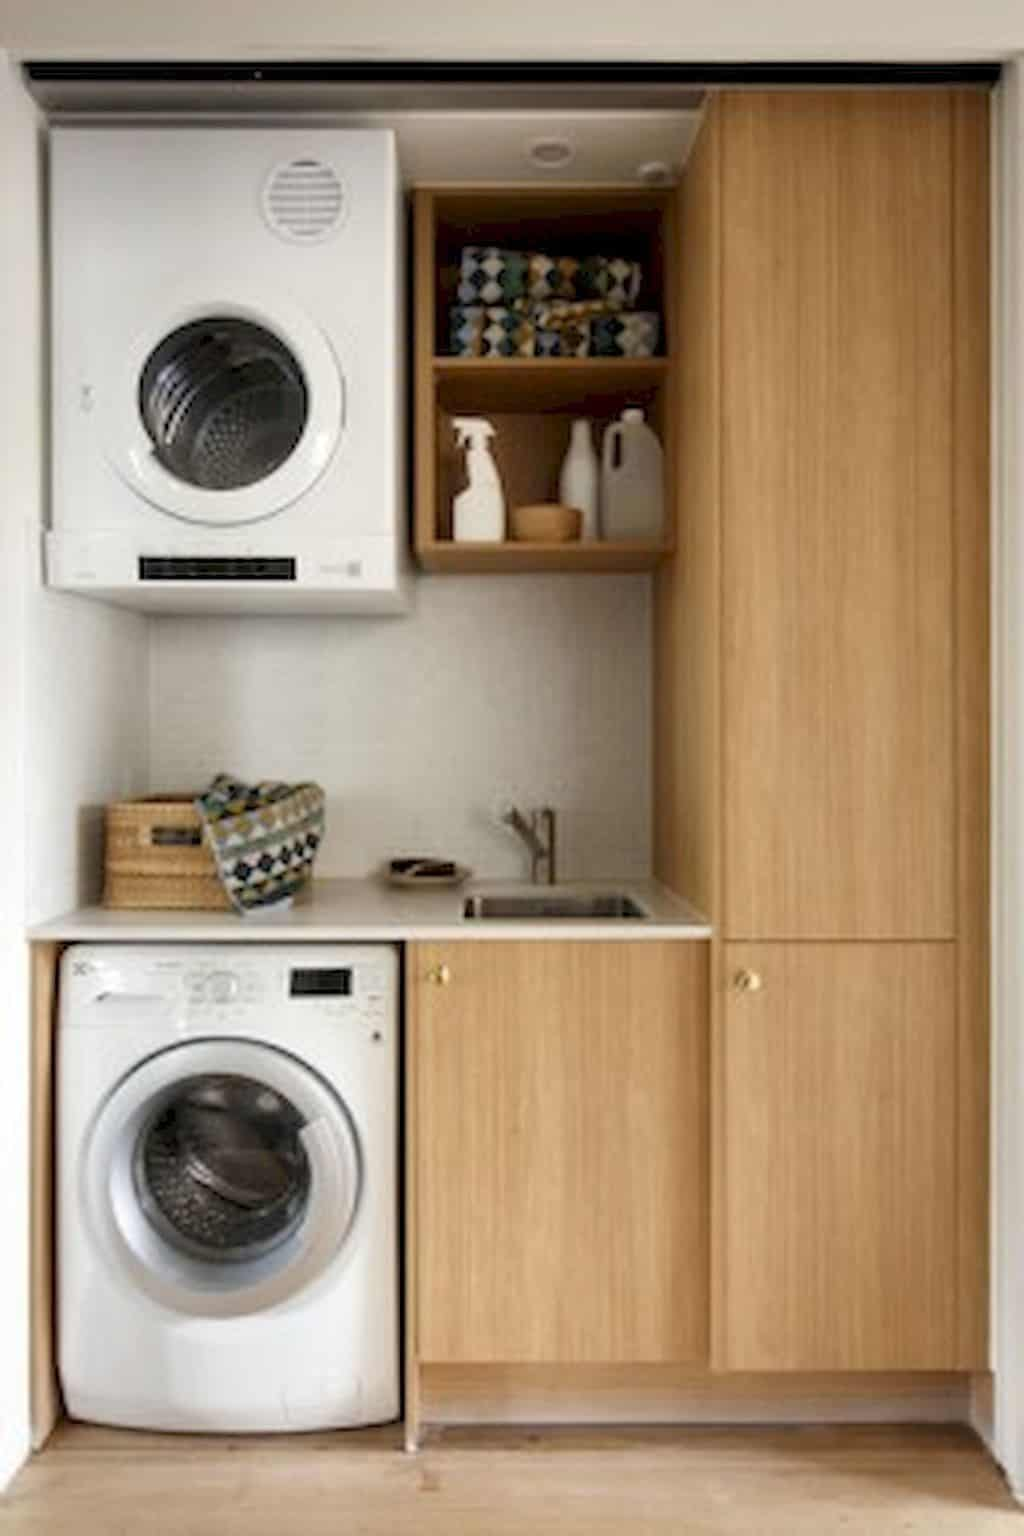 20 Laundry Room Organization Ideas That Can Function ... on Laundry Room Organization Ideas  id=68066